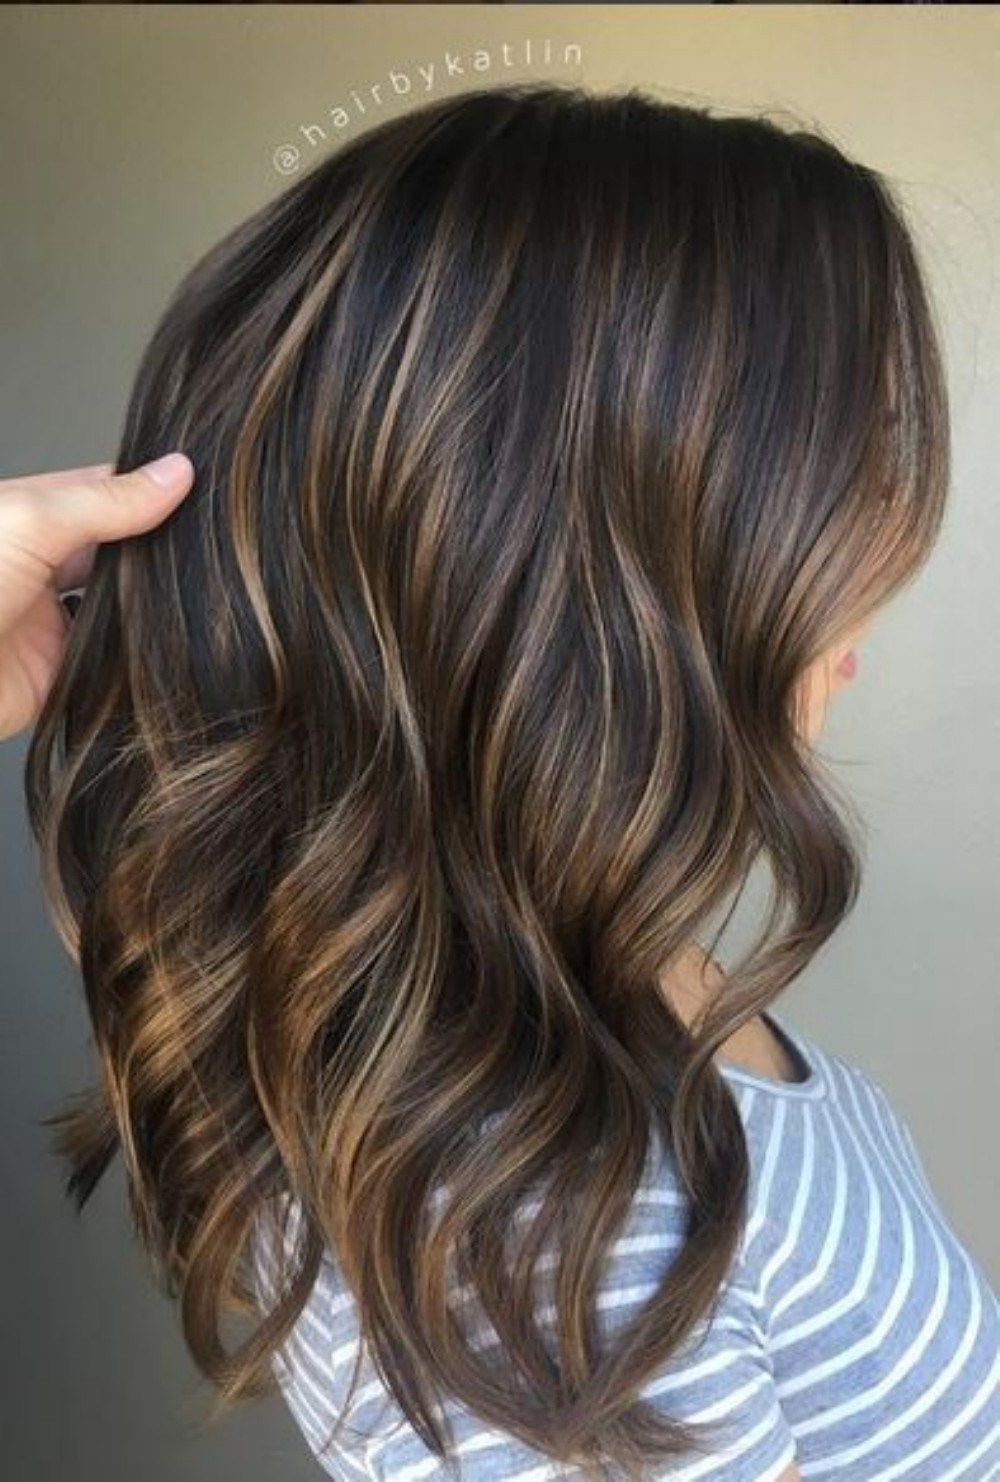 10 Stunning Hair Color Ideas For Brunettes top brunette hair color ideas to try 2017 17 hairstyle